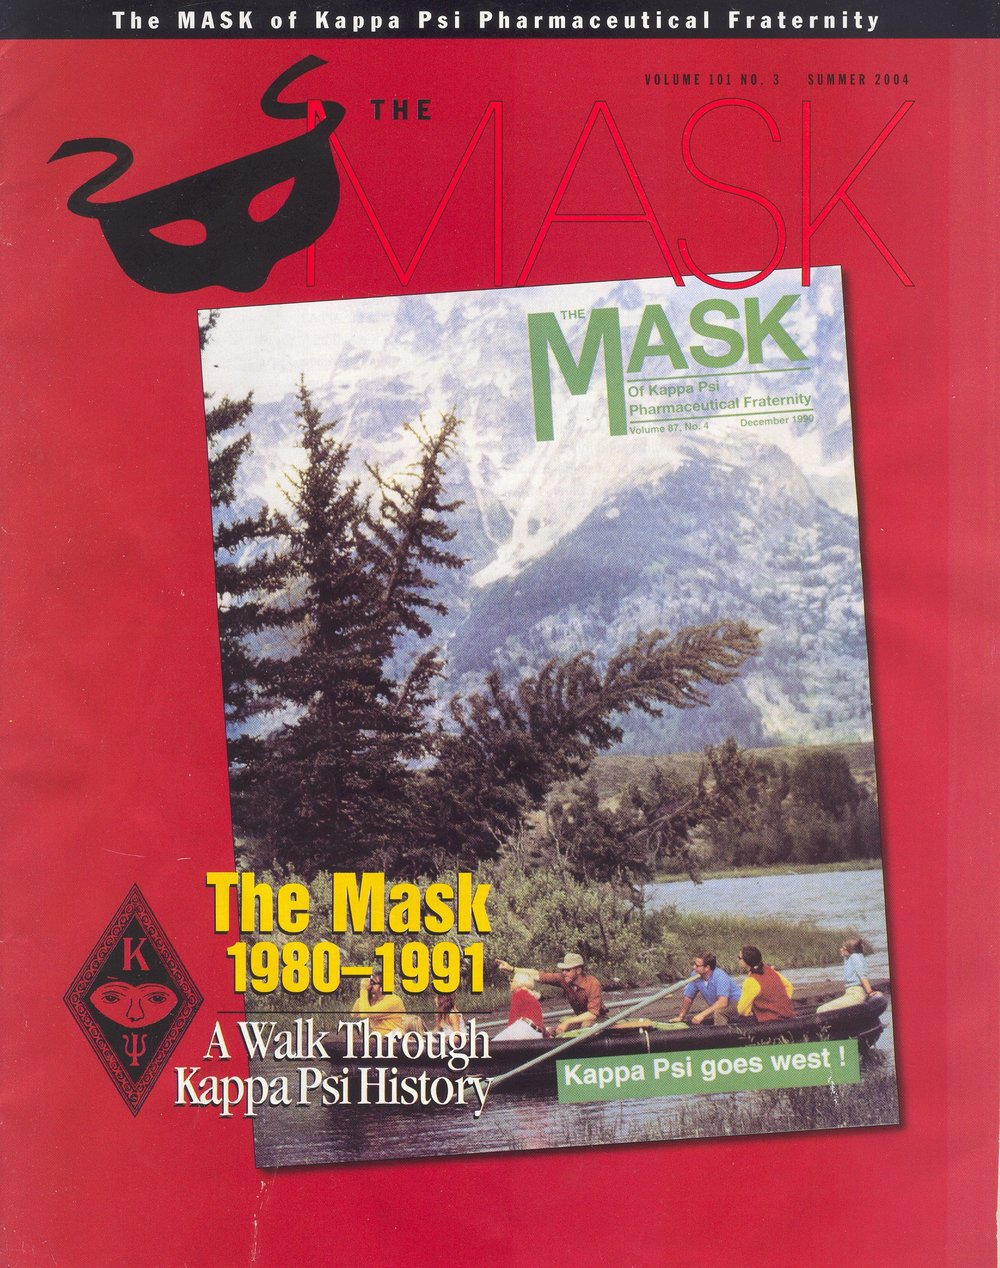 mask_cover_101-3_2004_sum.jpg